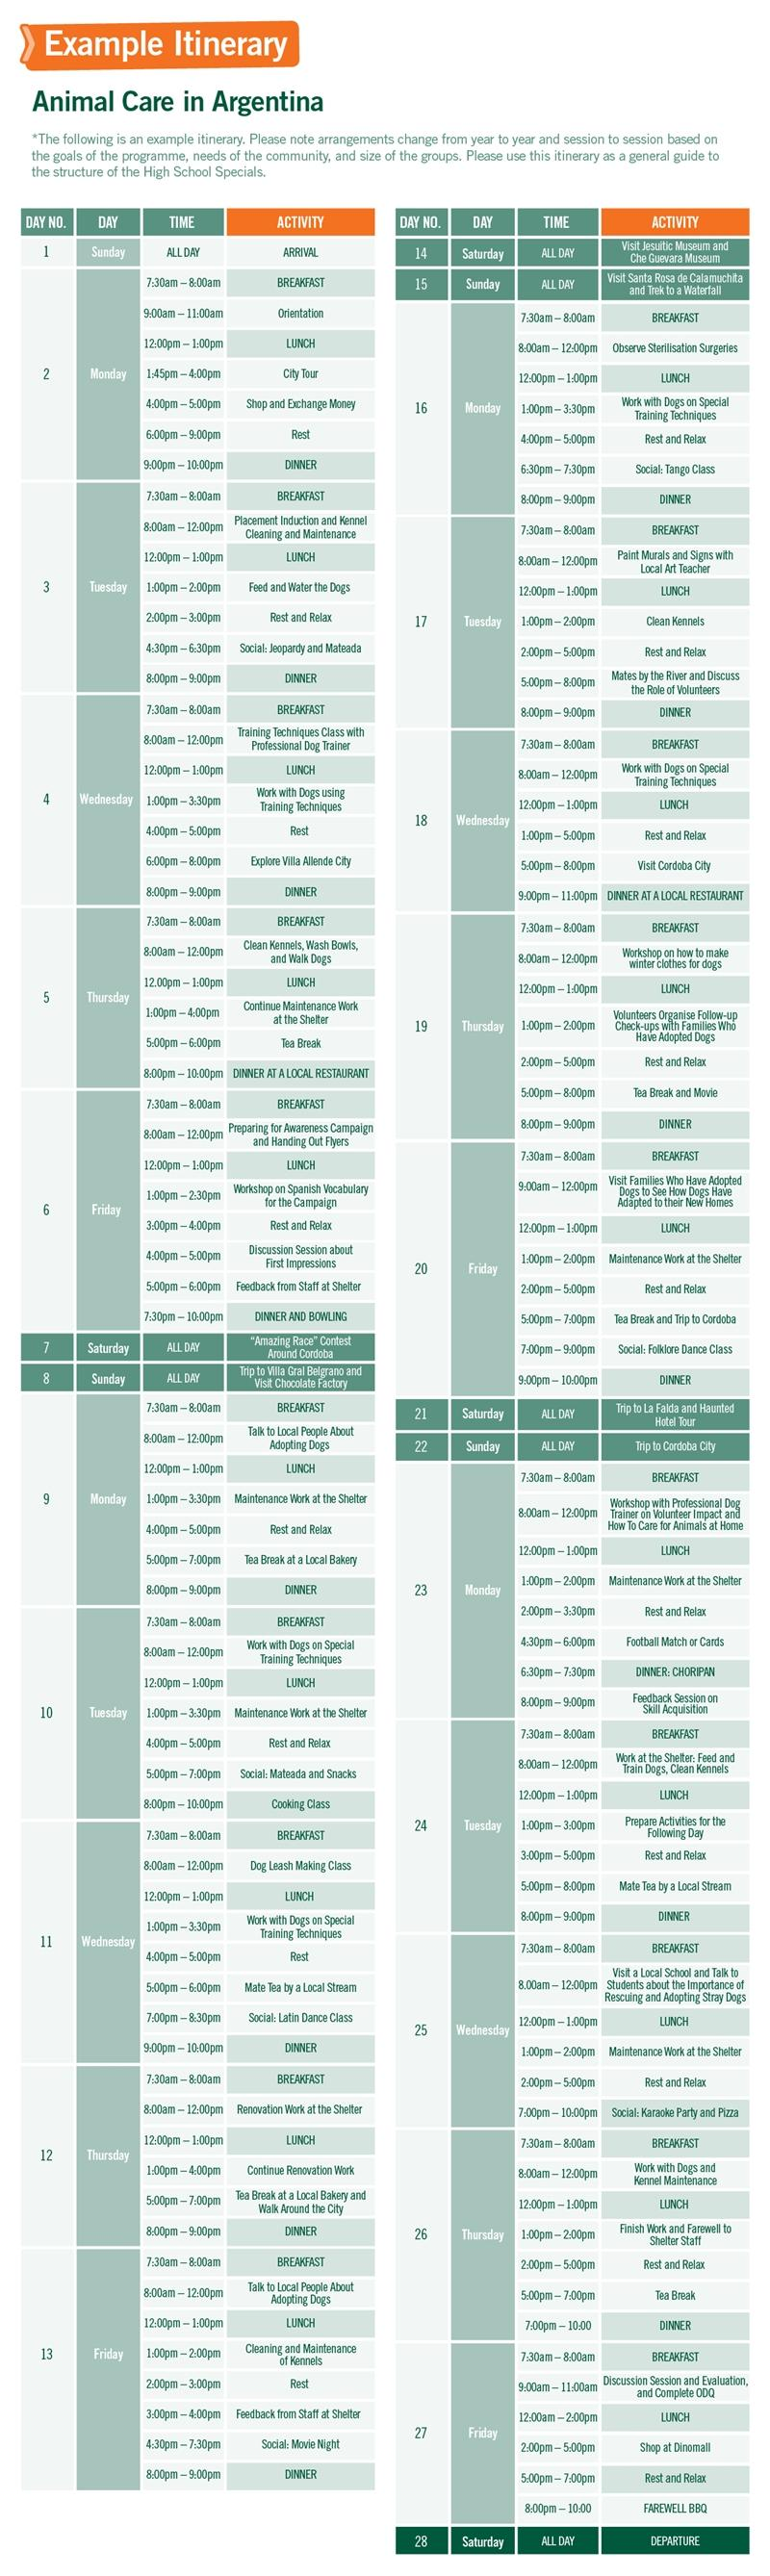 High School Special sample schedule for Animal Care in Argentina